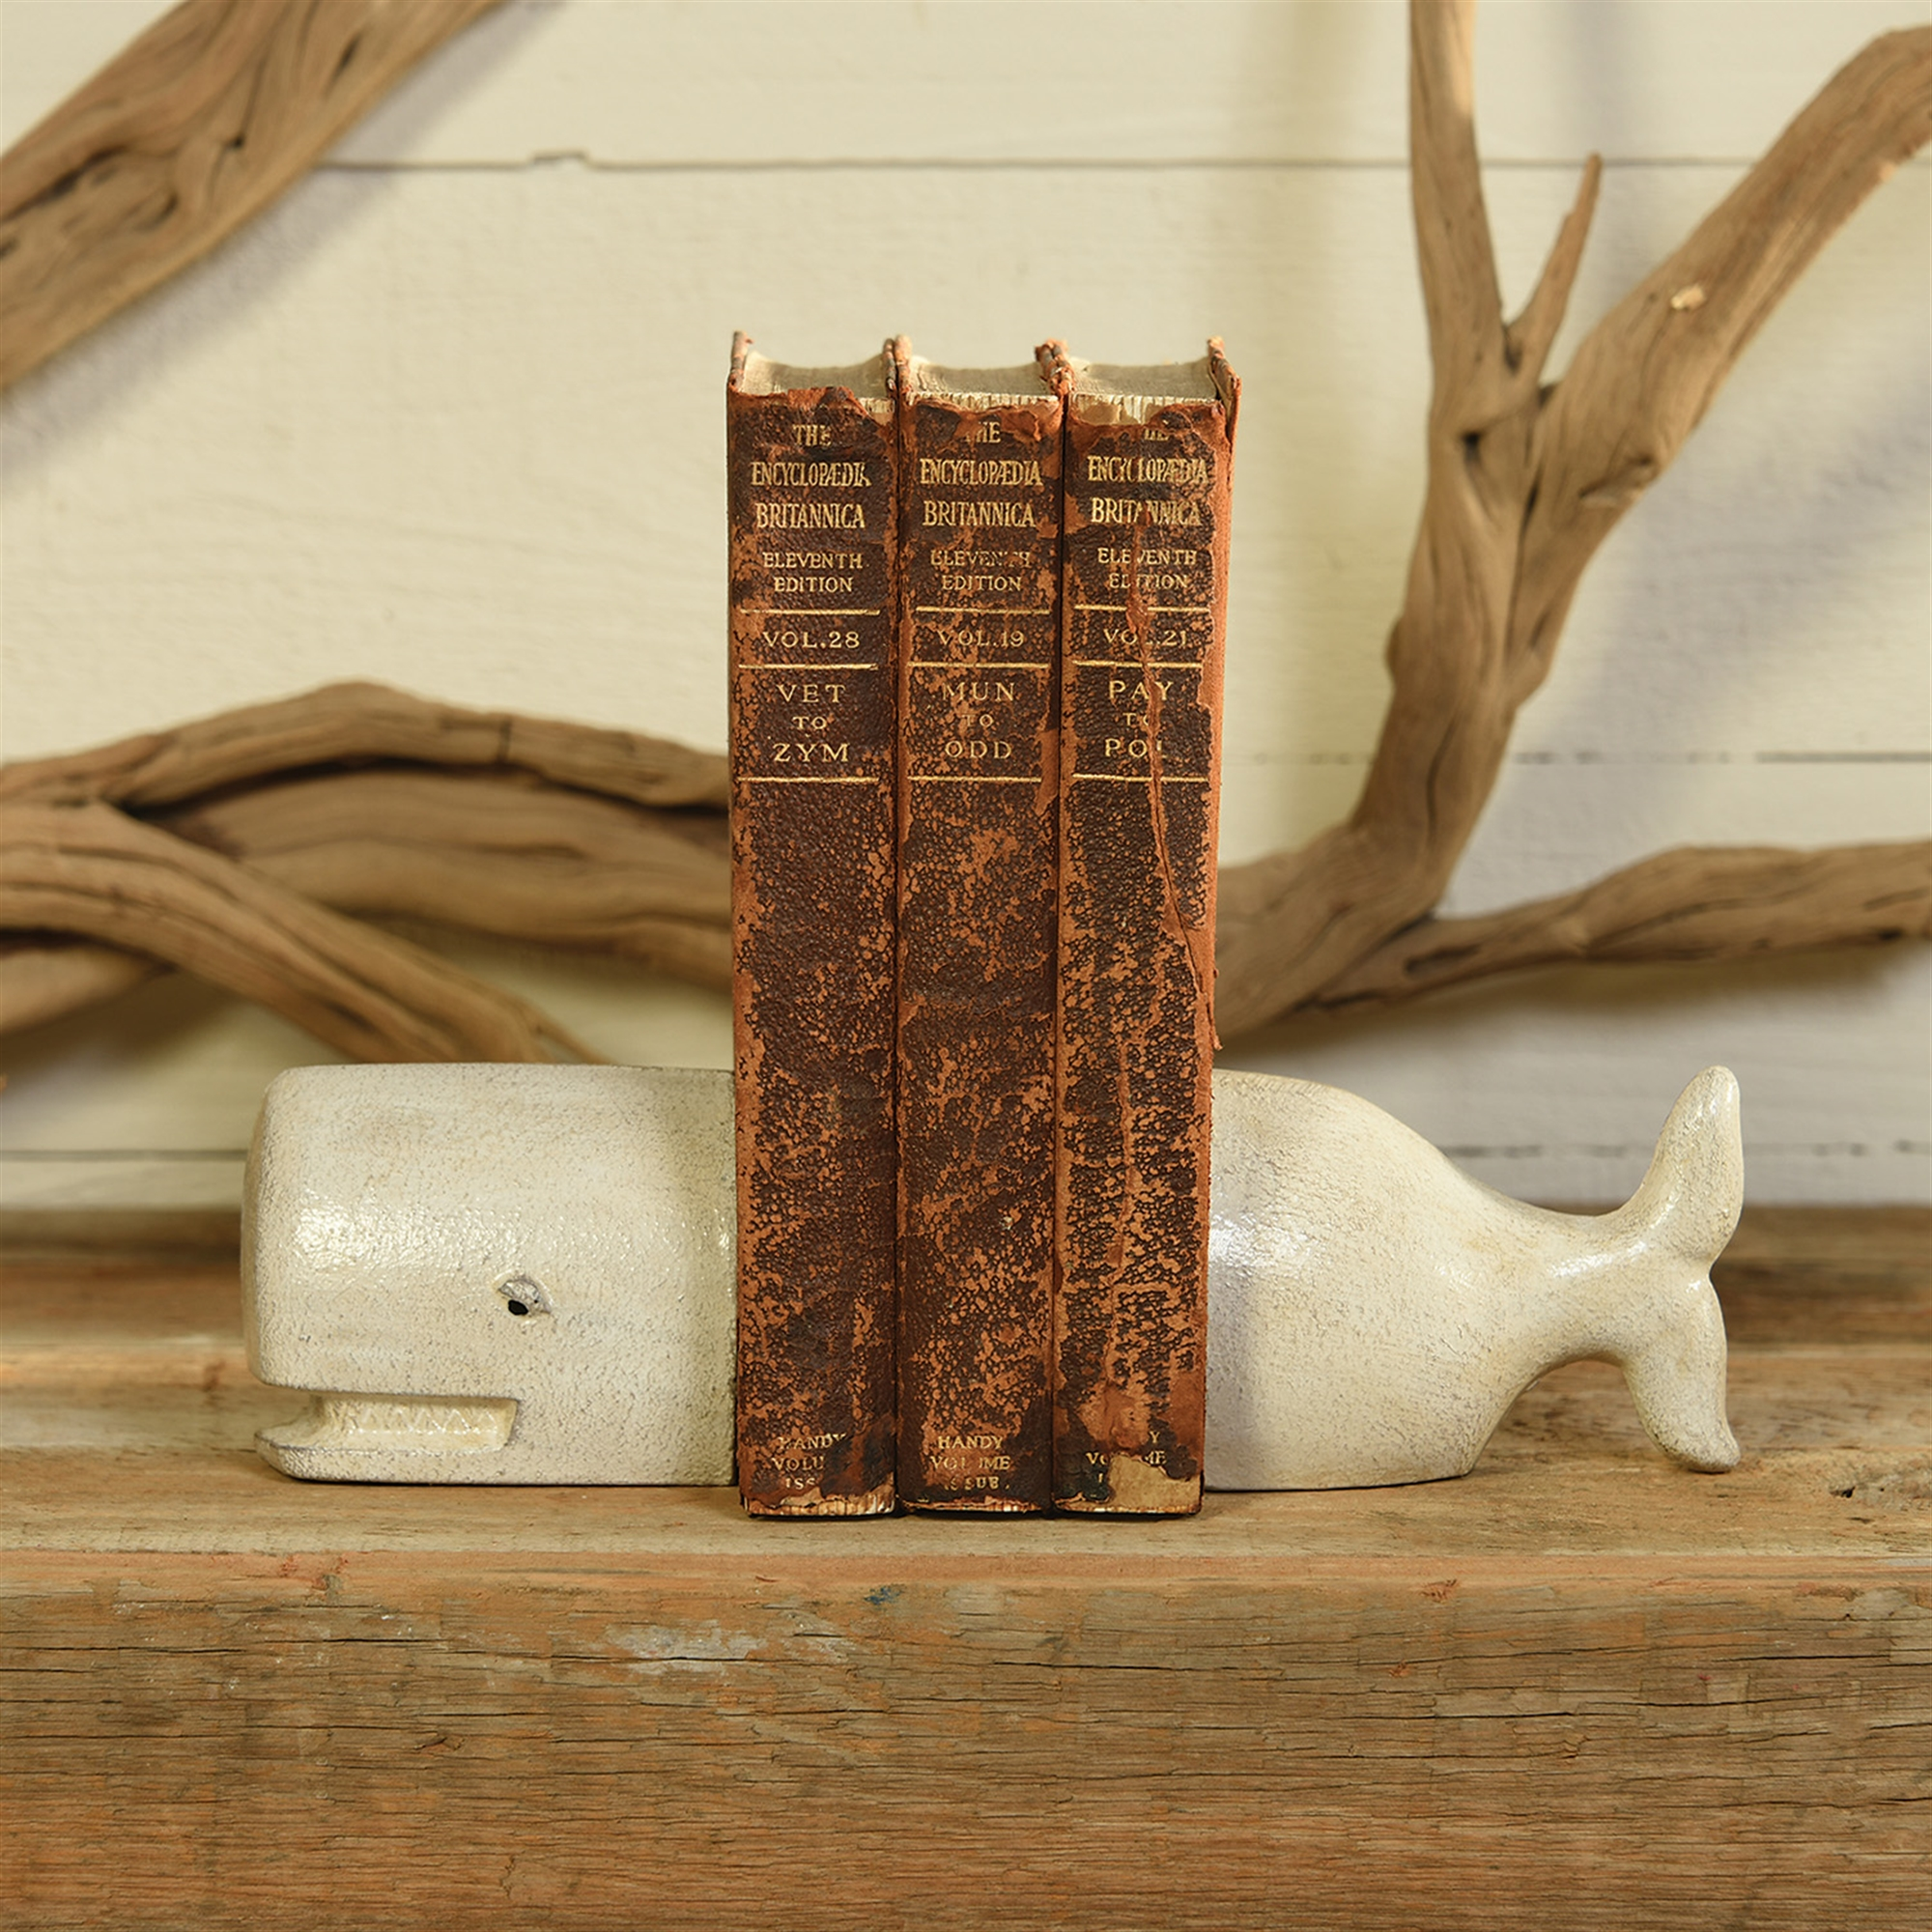 1604-6-Whale Bookends - Cast Iron - White by Homart